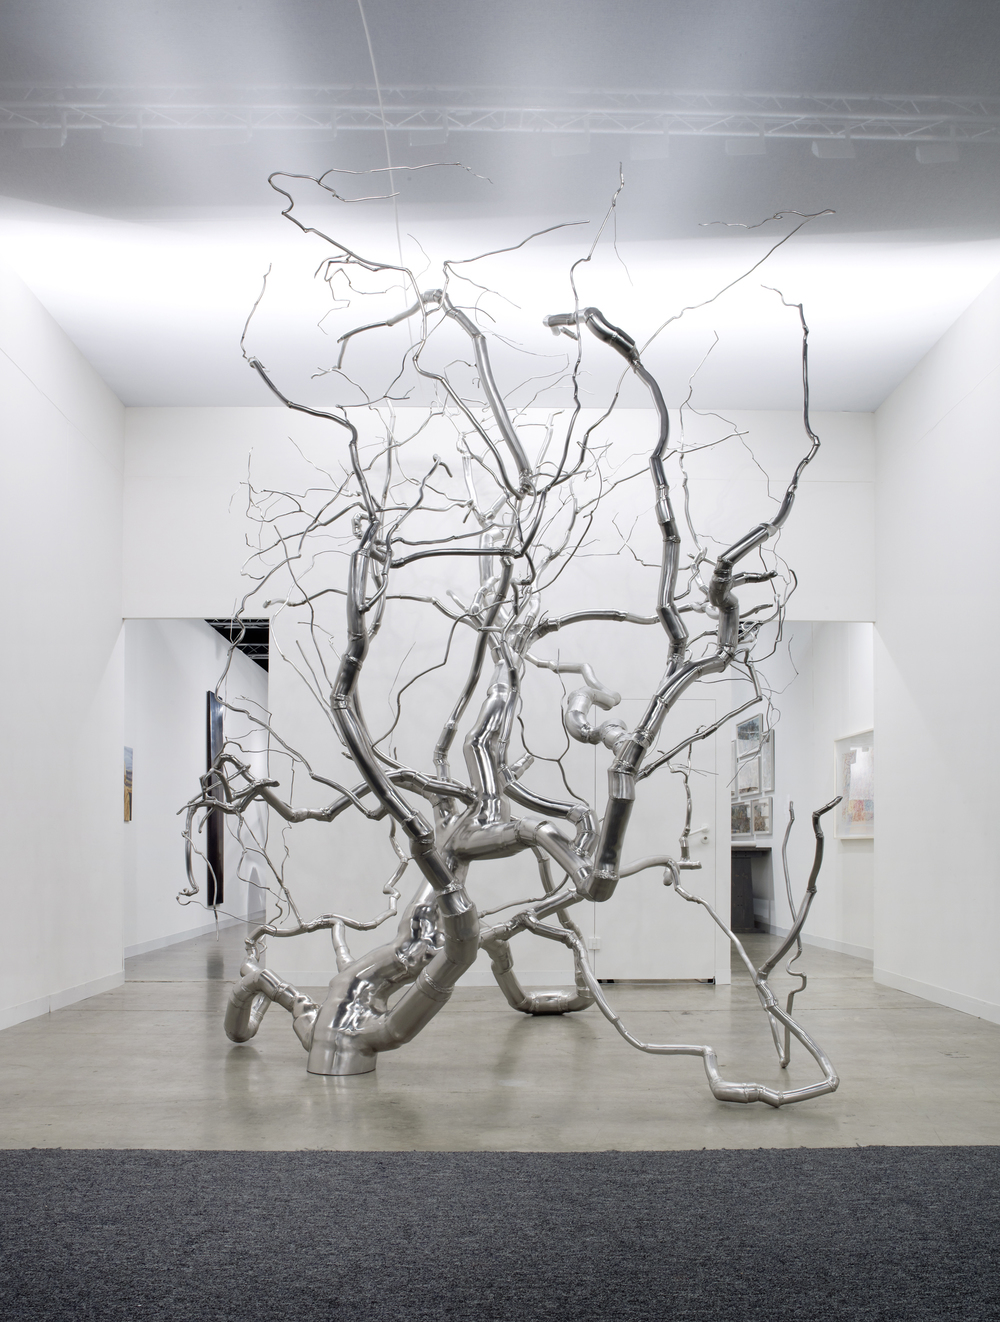 Containment 1, 2009, 14 x 8 x 8 feet